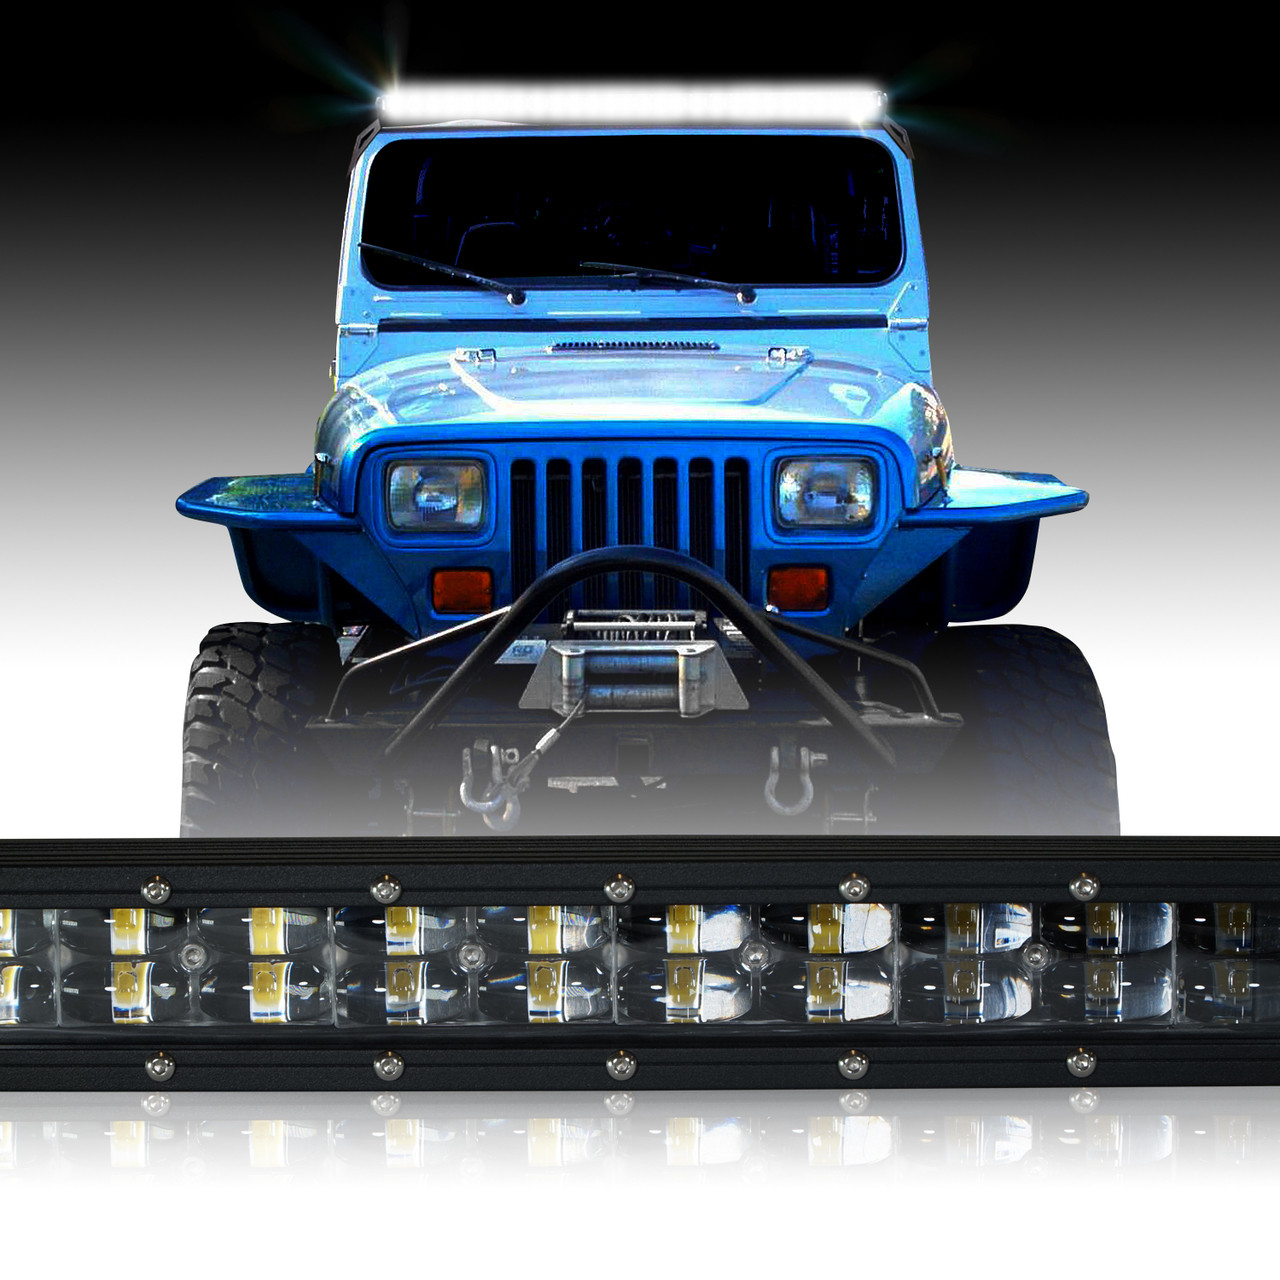 Jeep Yj Wiring 50 Inch Diagram Data 87 Led Light Bar 288w Inches Bracket Harness Kit For Wrangler